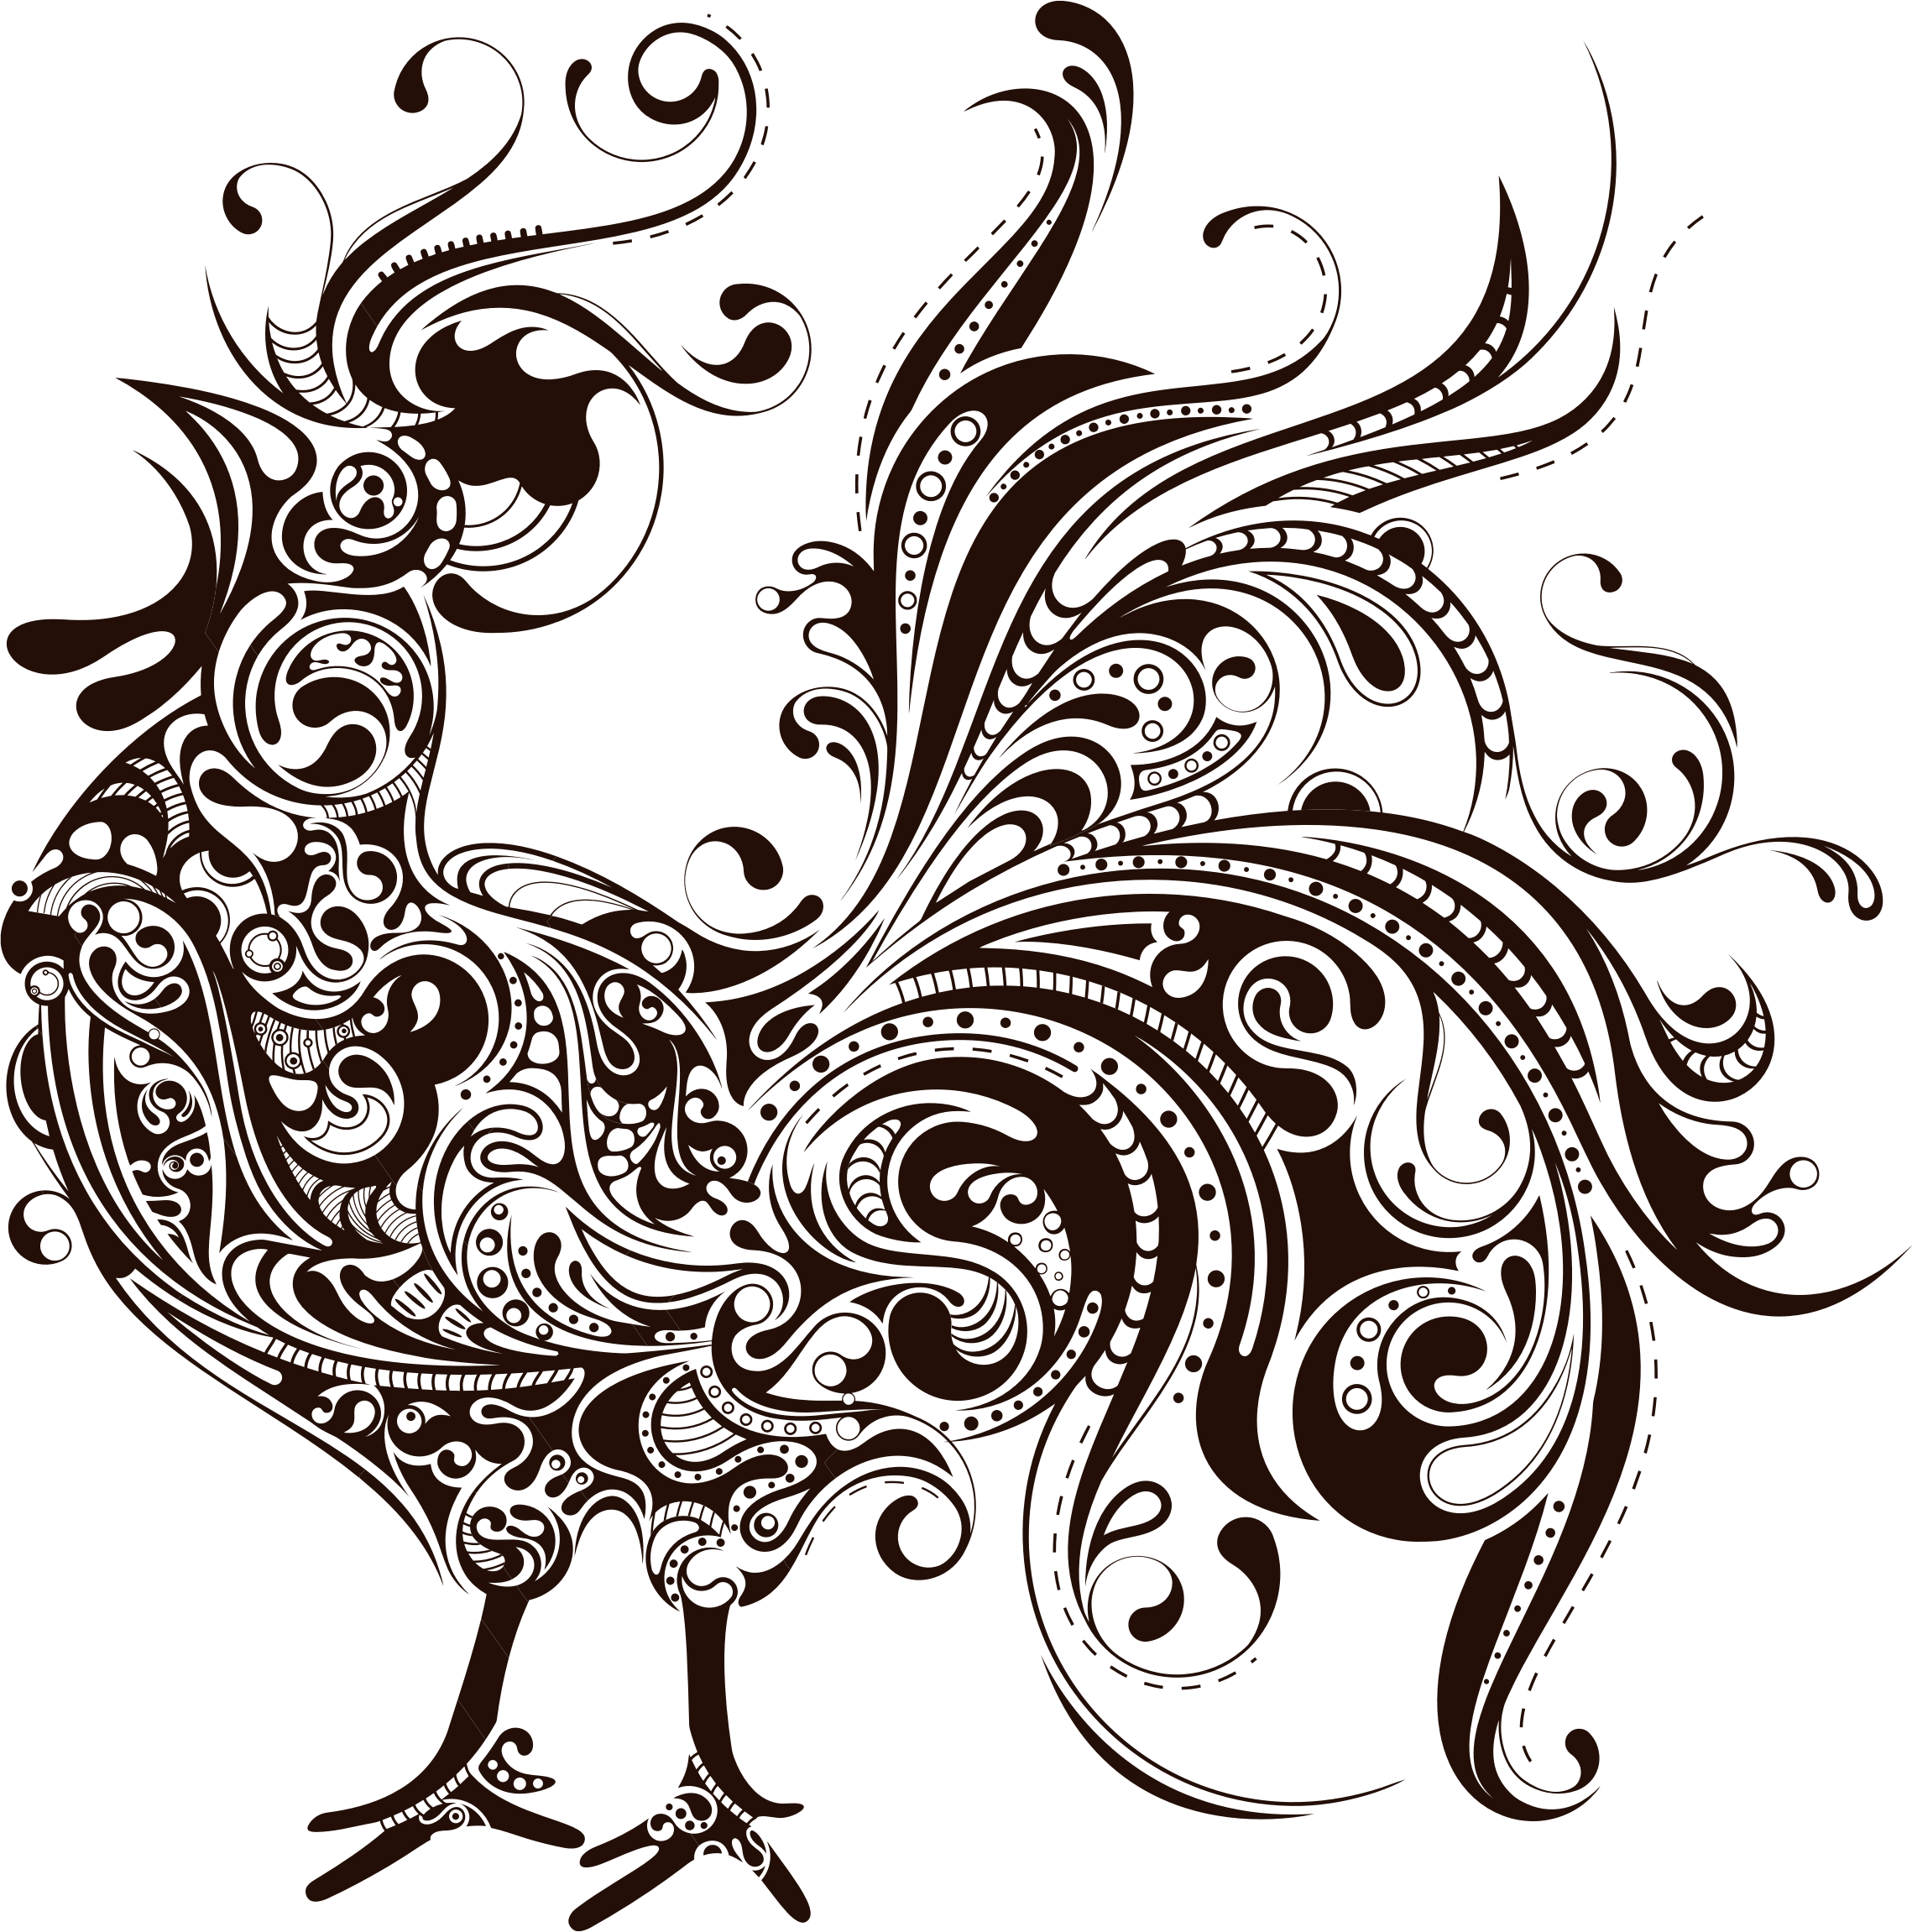 Compass clipart rooster. Silhouette clip art at